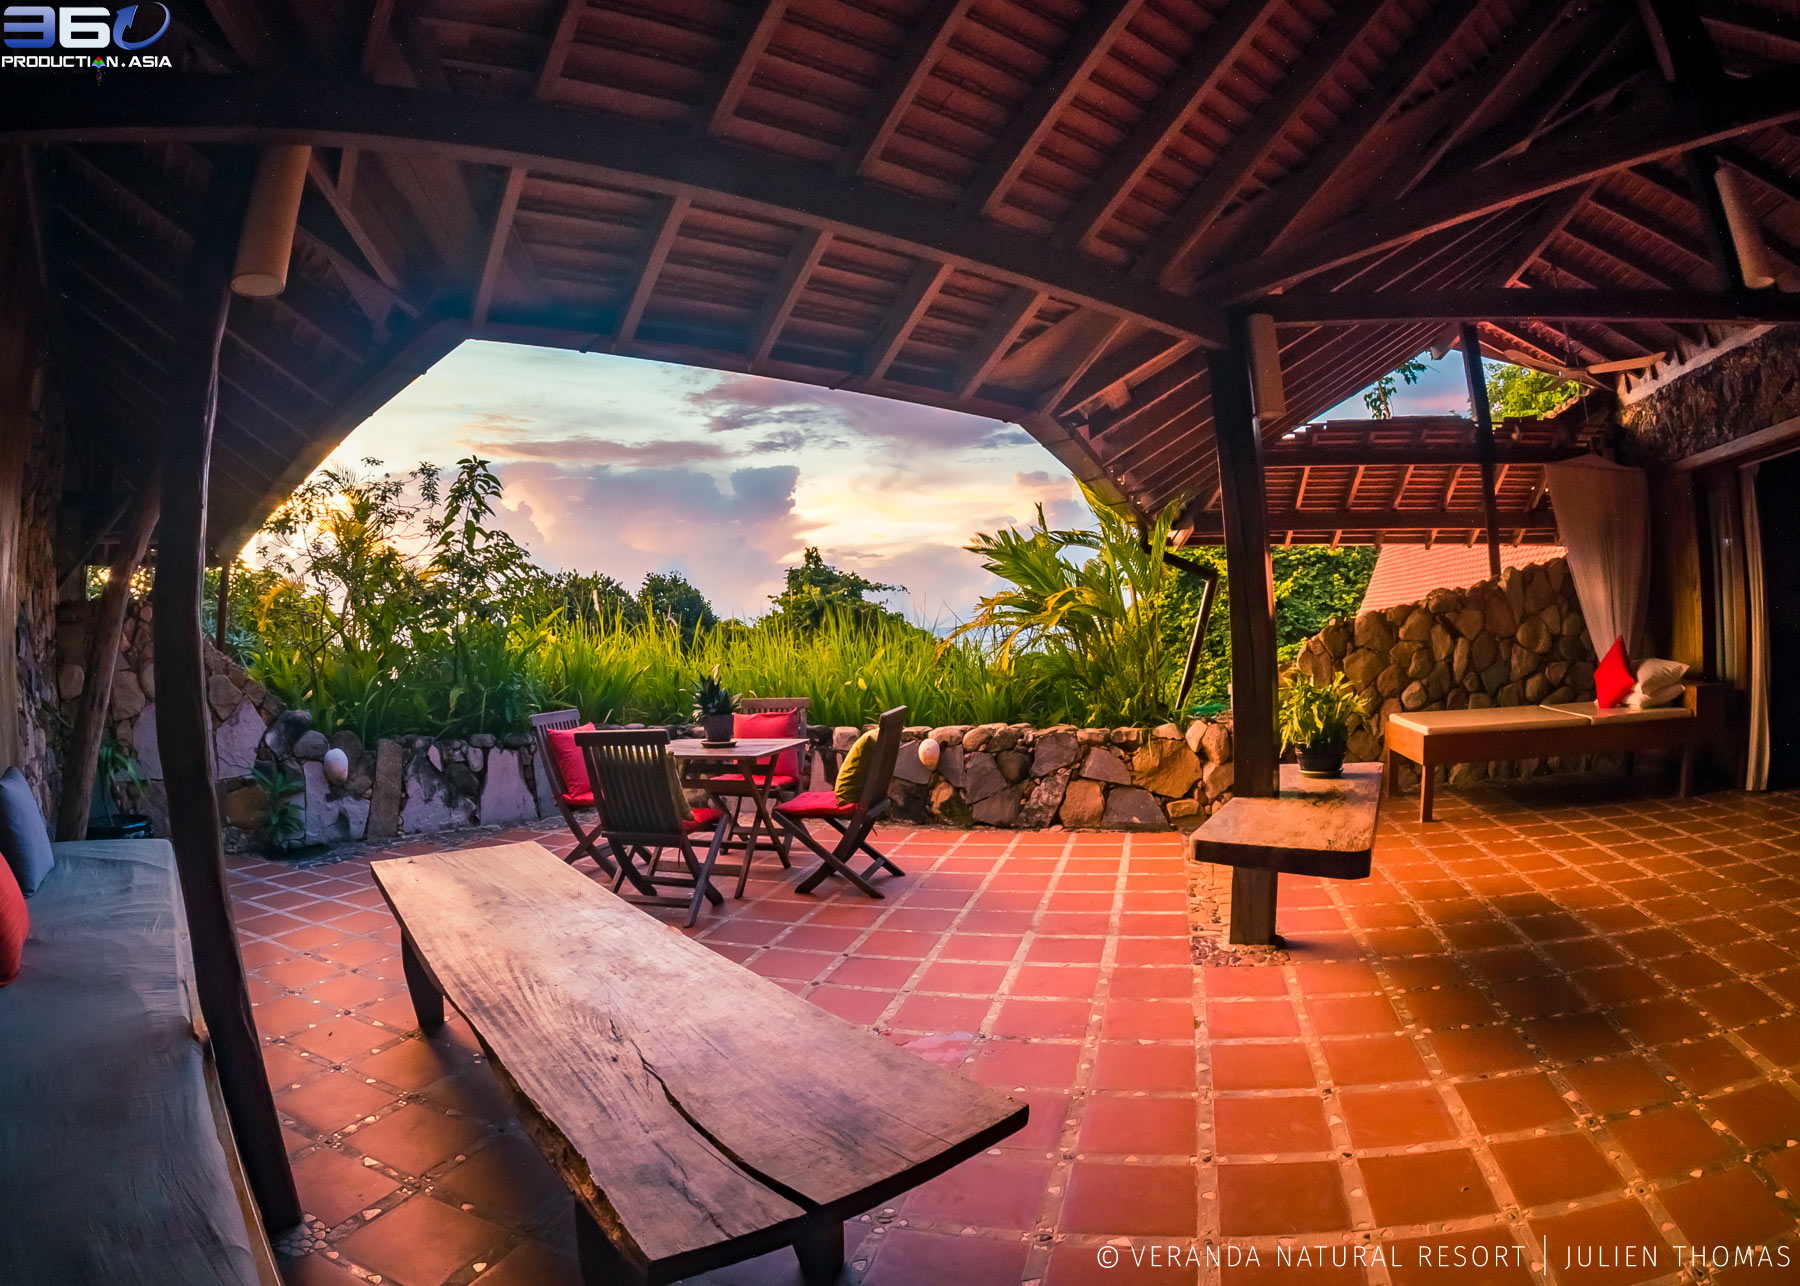 Private terrace facing the Gulf of Thailand - Pacific Ocean during sunset with commodities for the guests in Veranda Natural Resort, Kep - Cambodia.